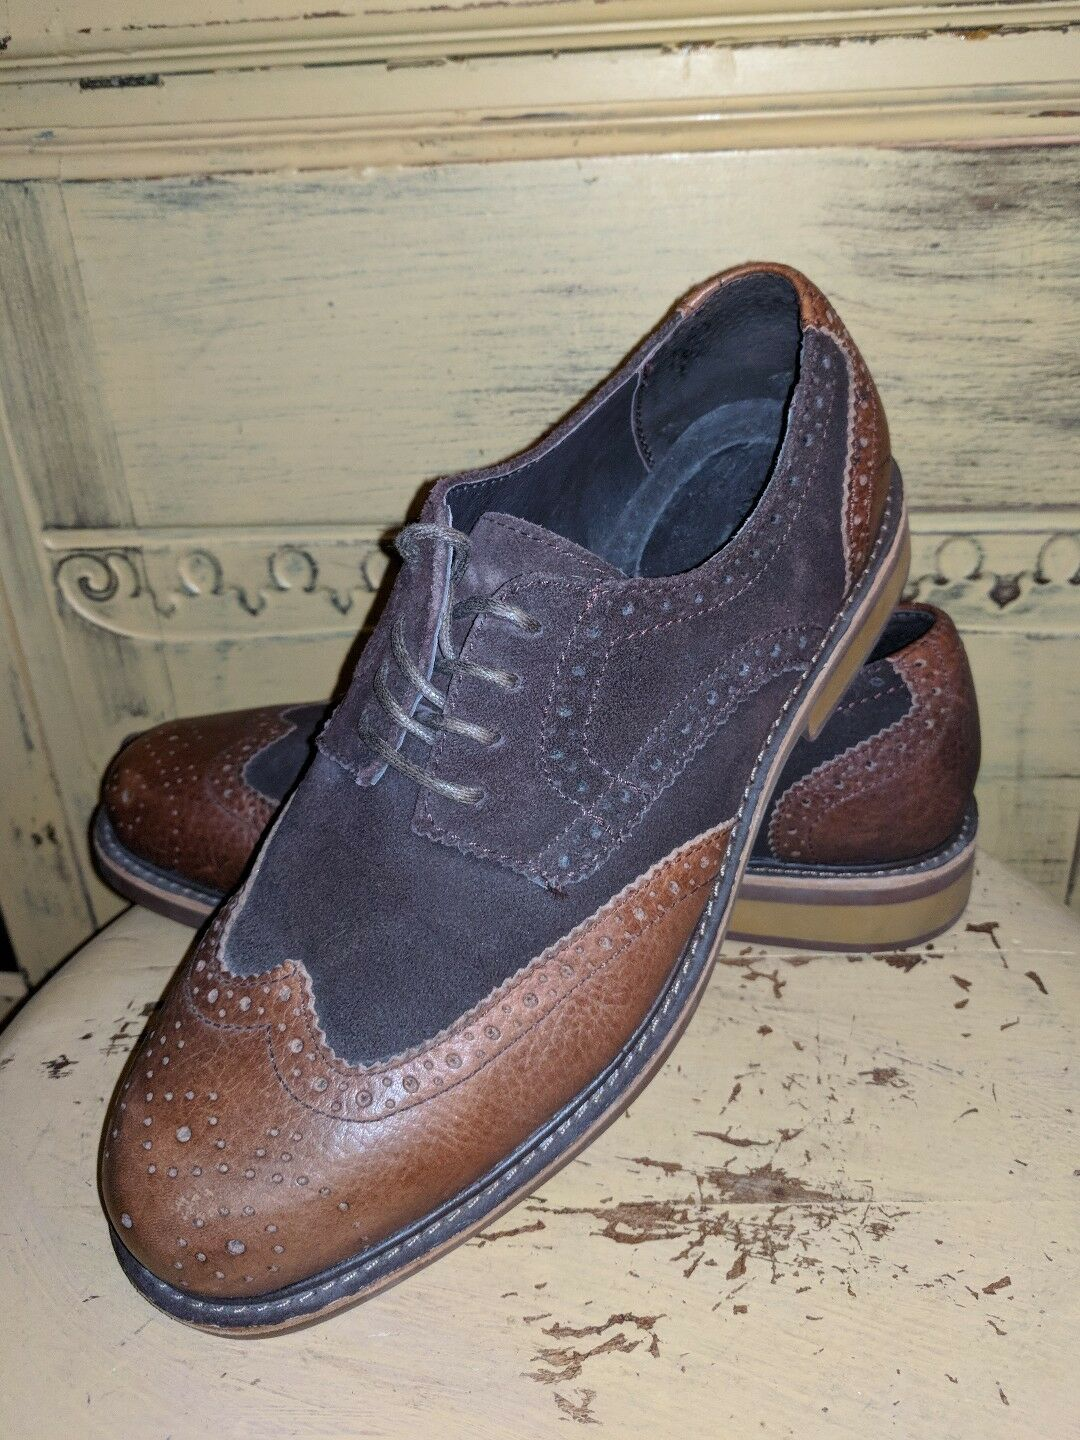 LANDS END MENS TWO TONE BROWN LEATHER WINGTIPS OXFORDS CASUAL SHOES 8 M UK 7 41